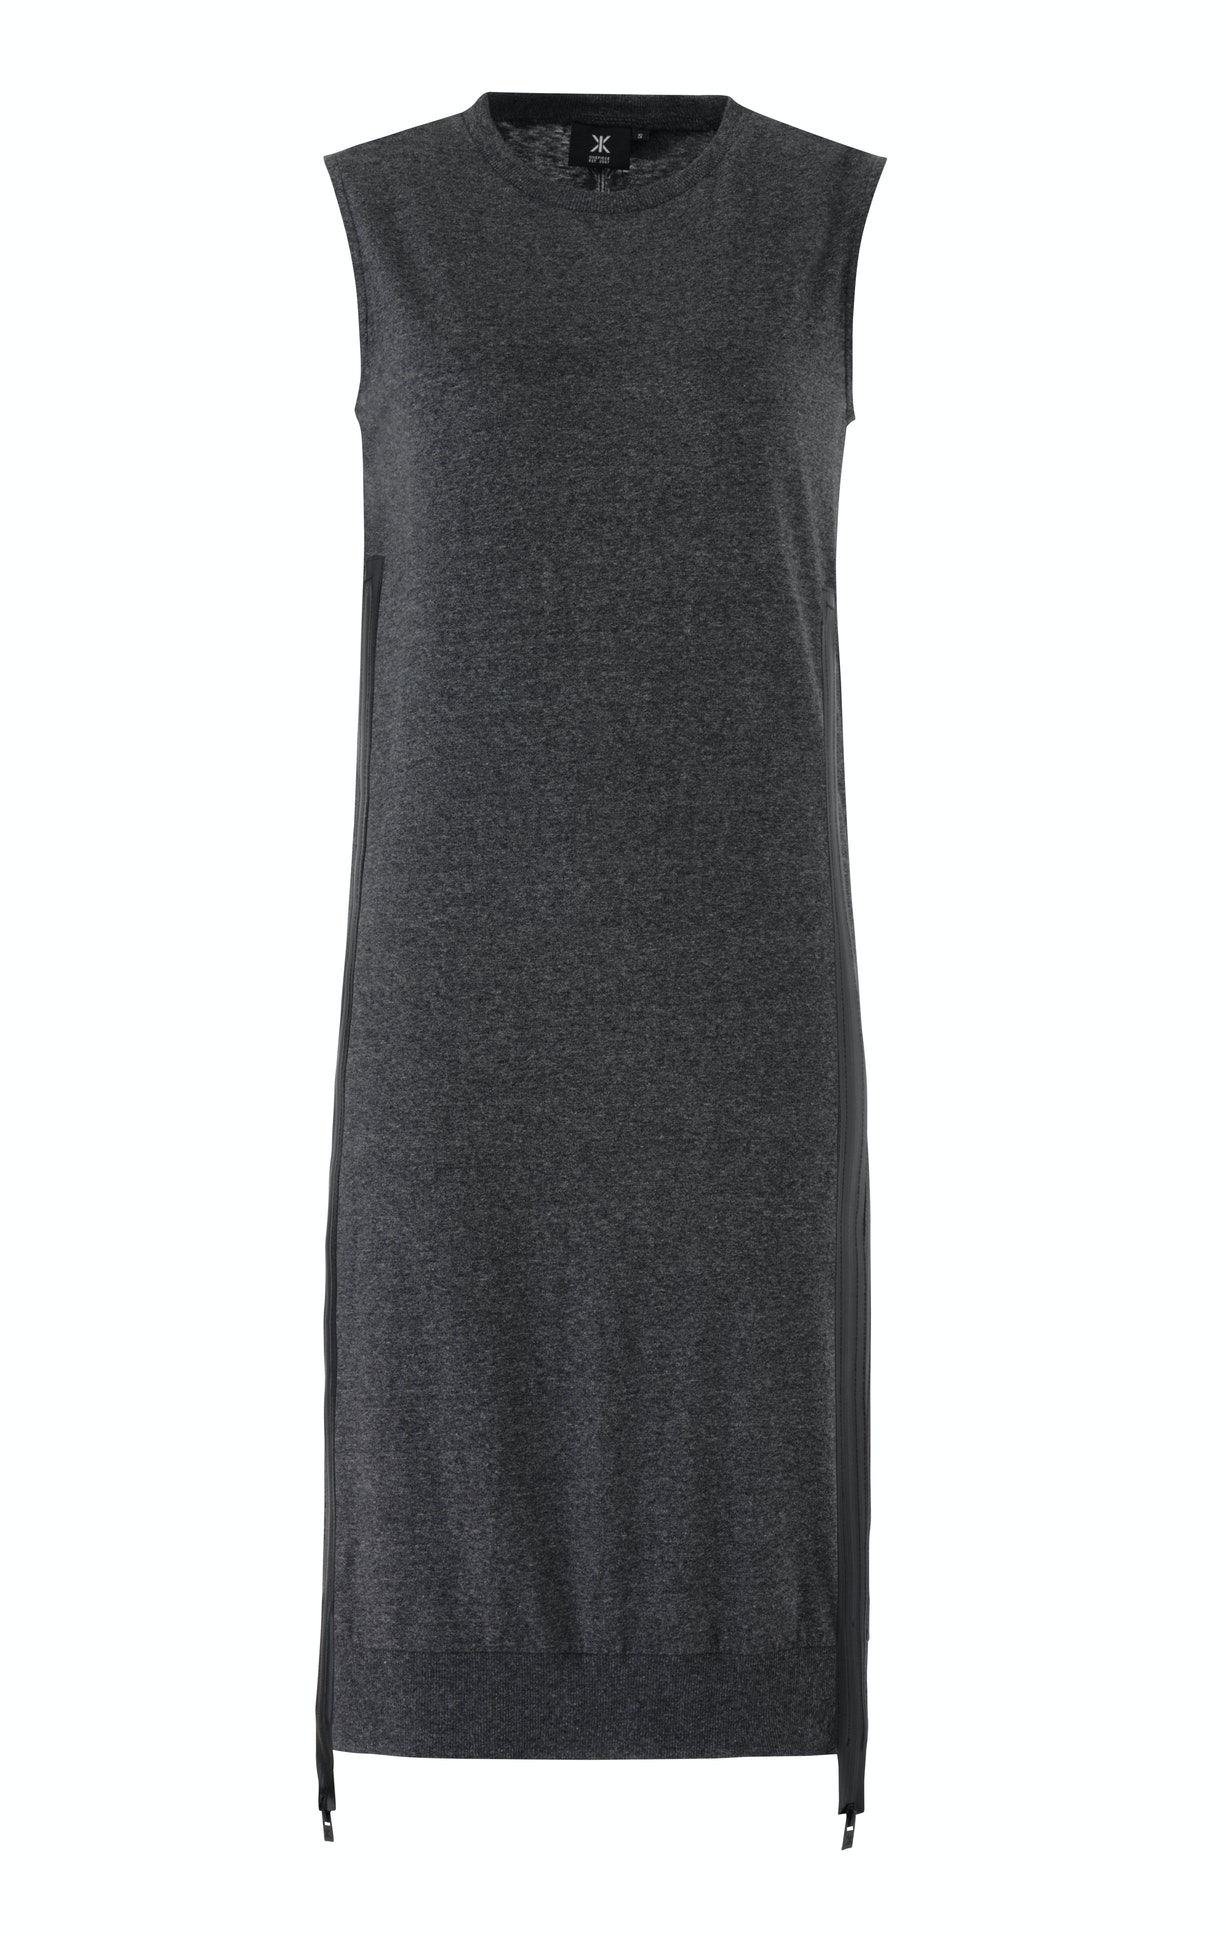 Shore Dress Black Mel A simple, lightweight summer dress in faded black with a twist. Adjust the water resistant zippers on each side and style your own way.